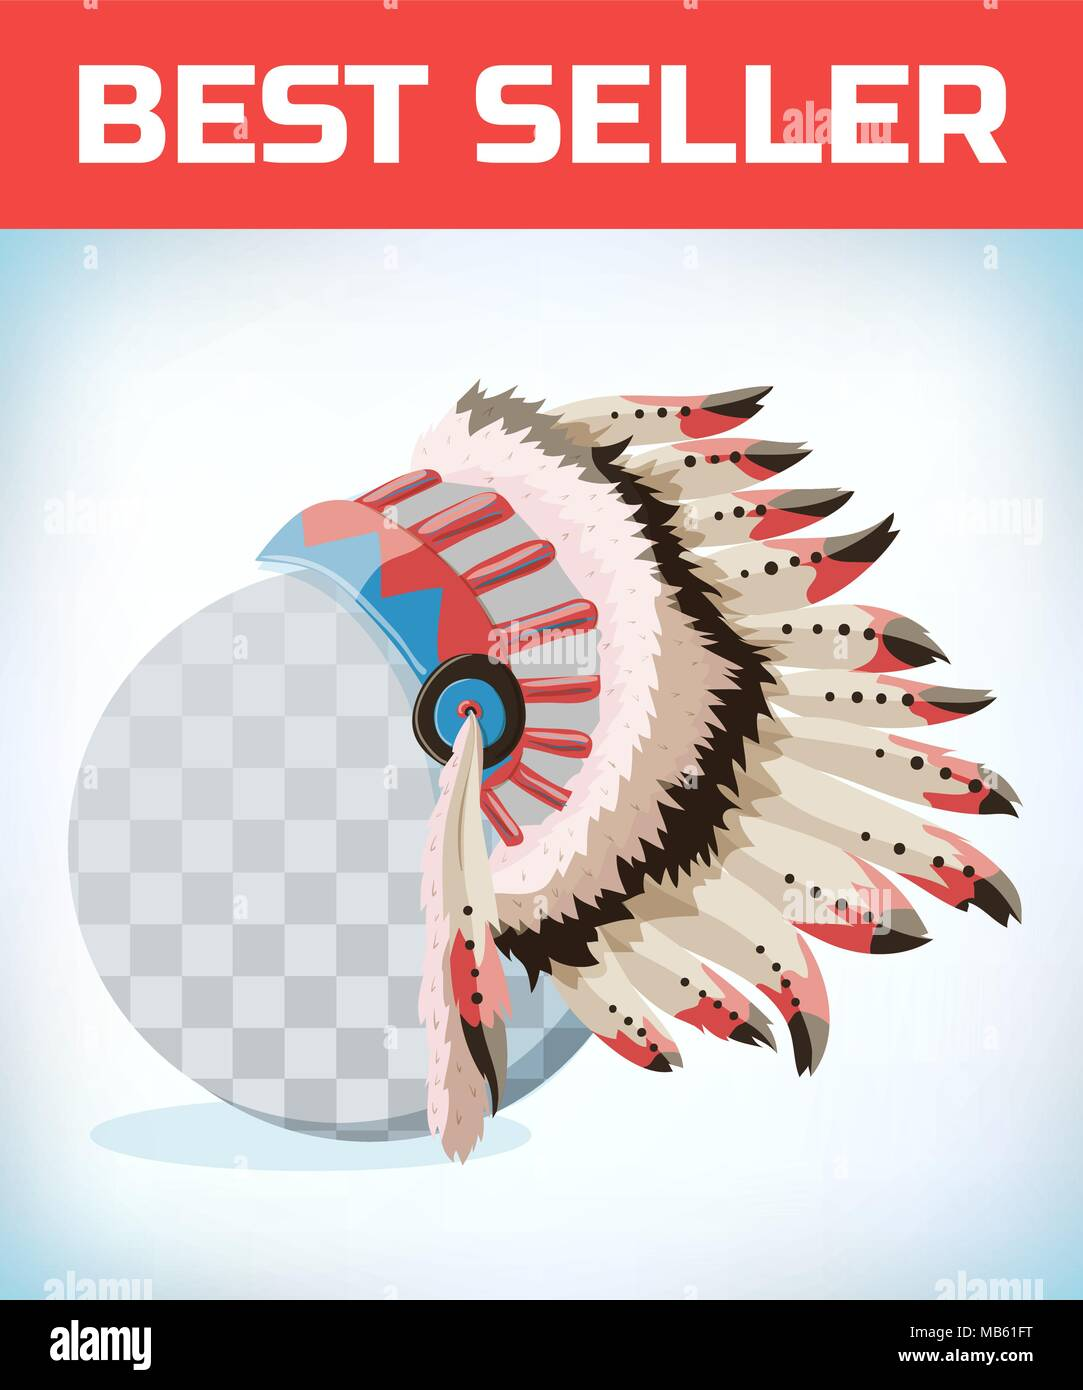 Native American Indians Headdress. Tribal Chief Feather Hat. Masquerade costume headdress. Carnival or Halloween mask. Cartoon Vector illustration. - Stock Image